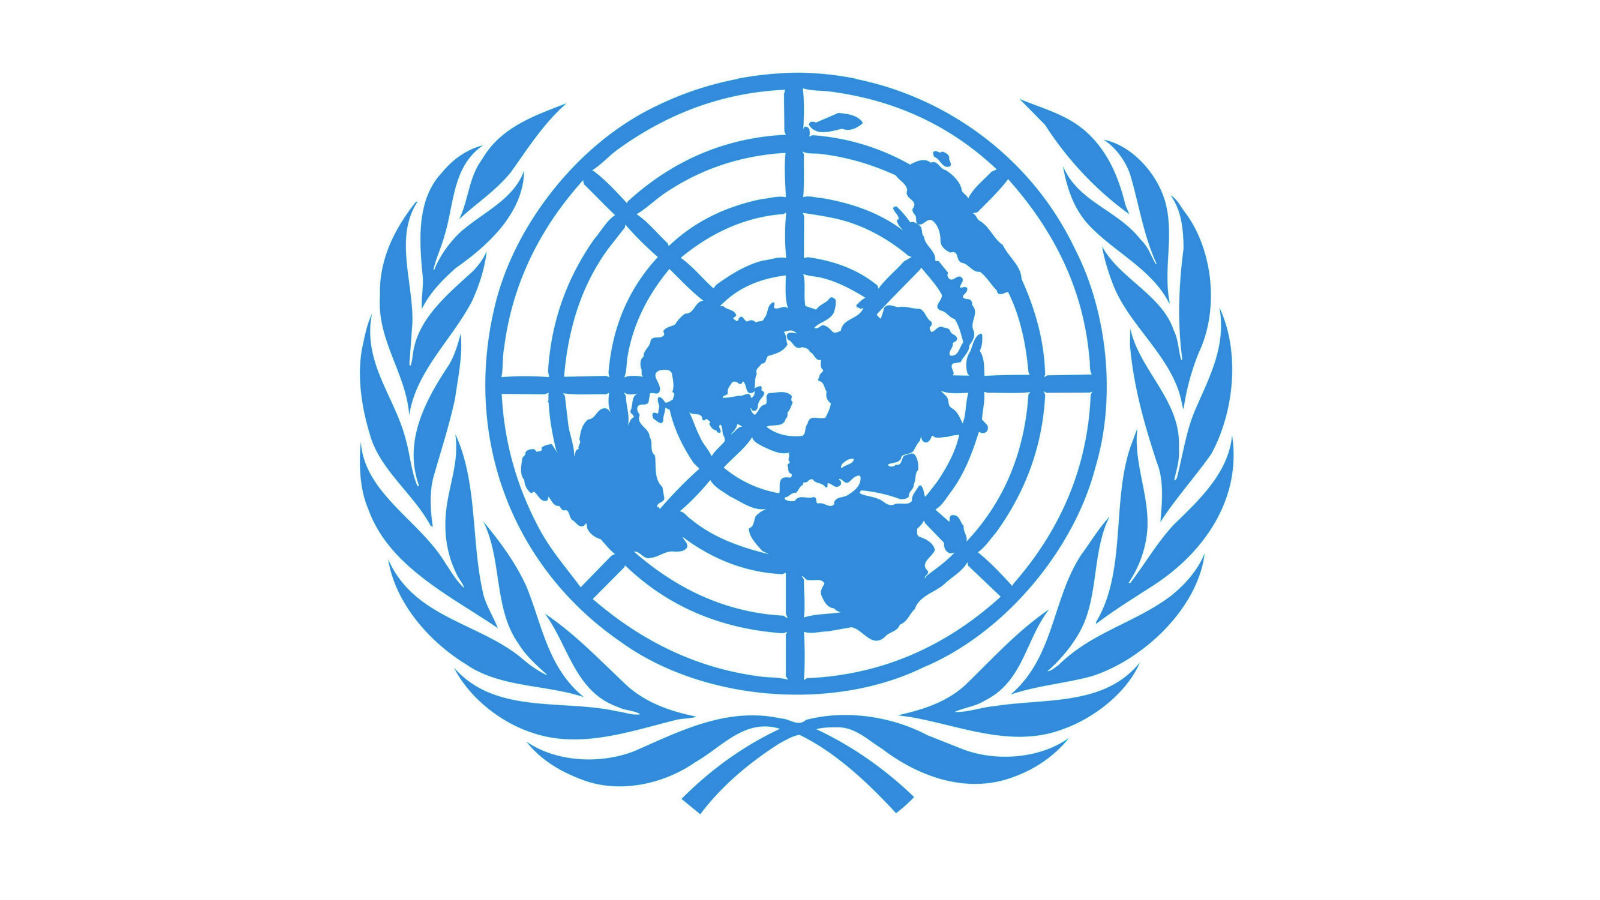 Organisation des Nations Unies